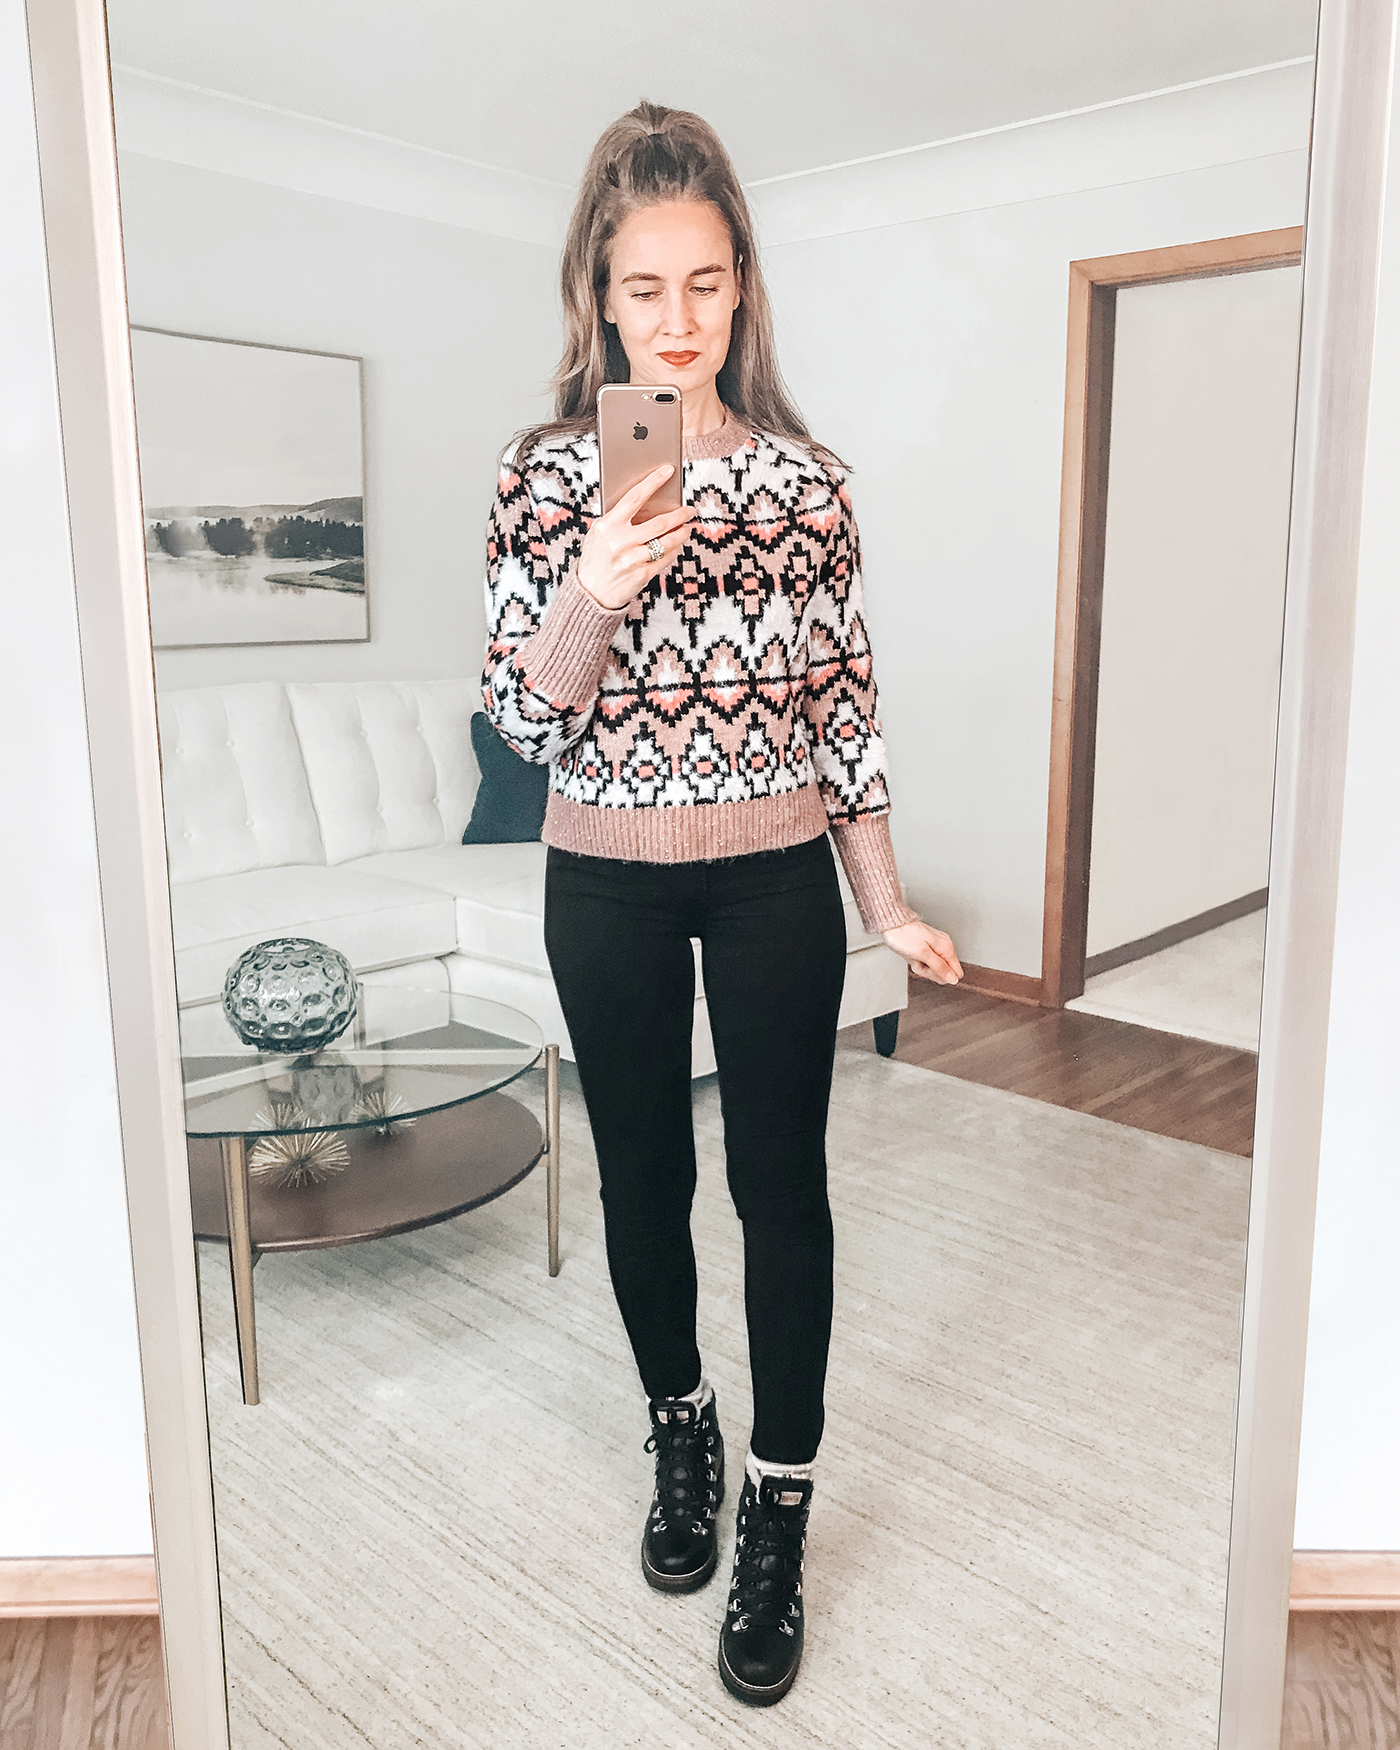 style blogger mirror selfie wearing cozy fair isle winter sweater and lace up hiking boots